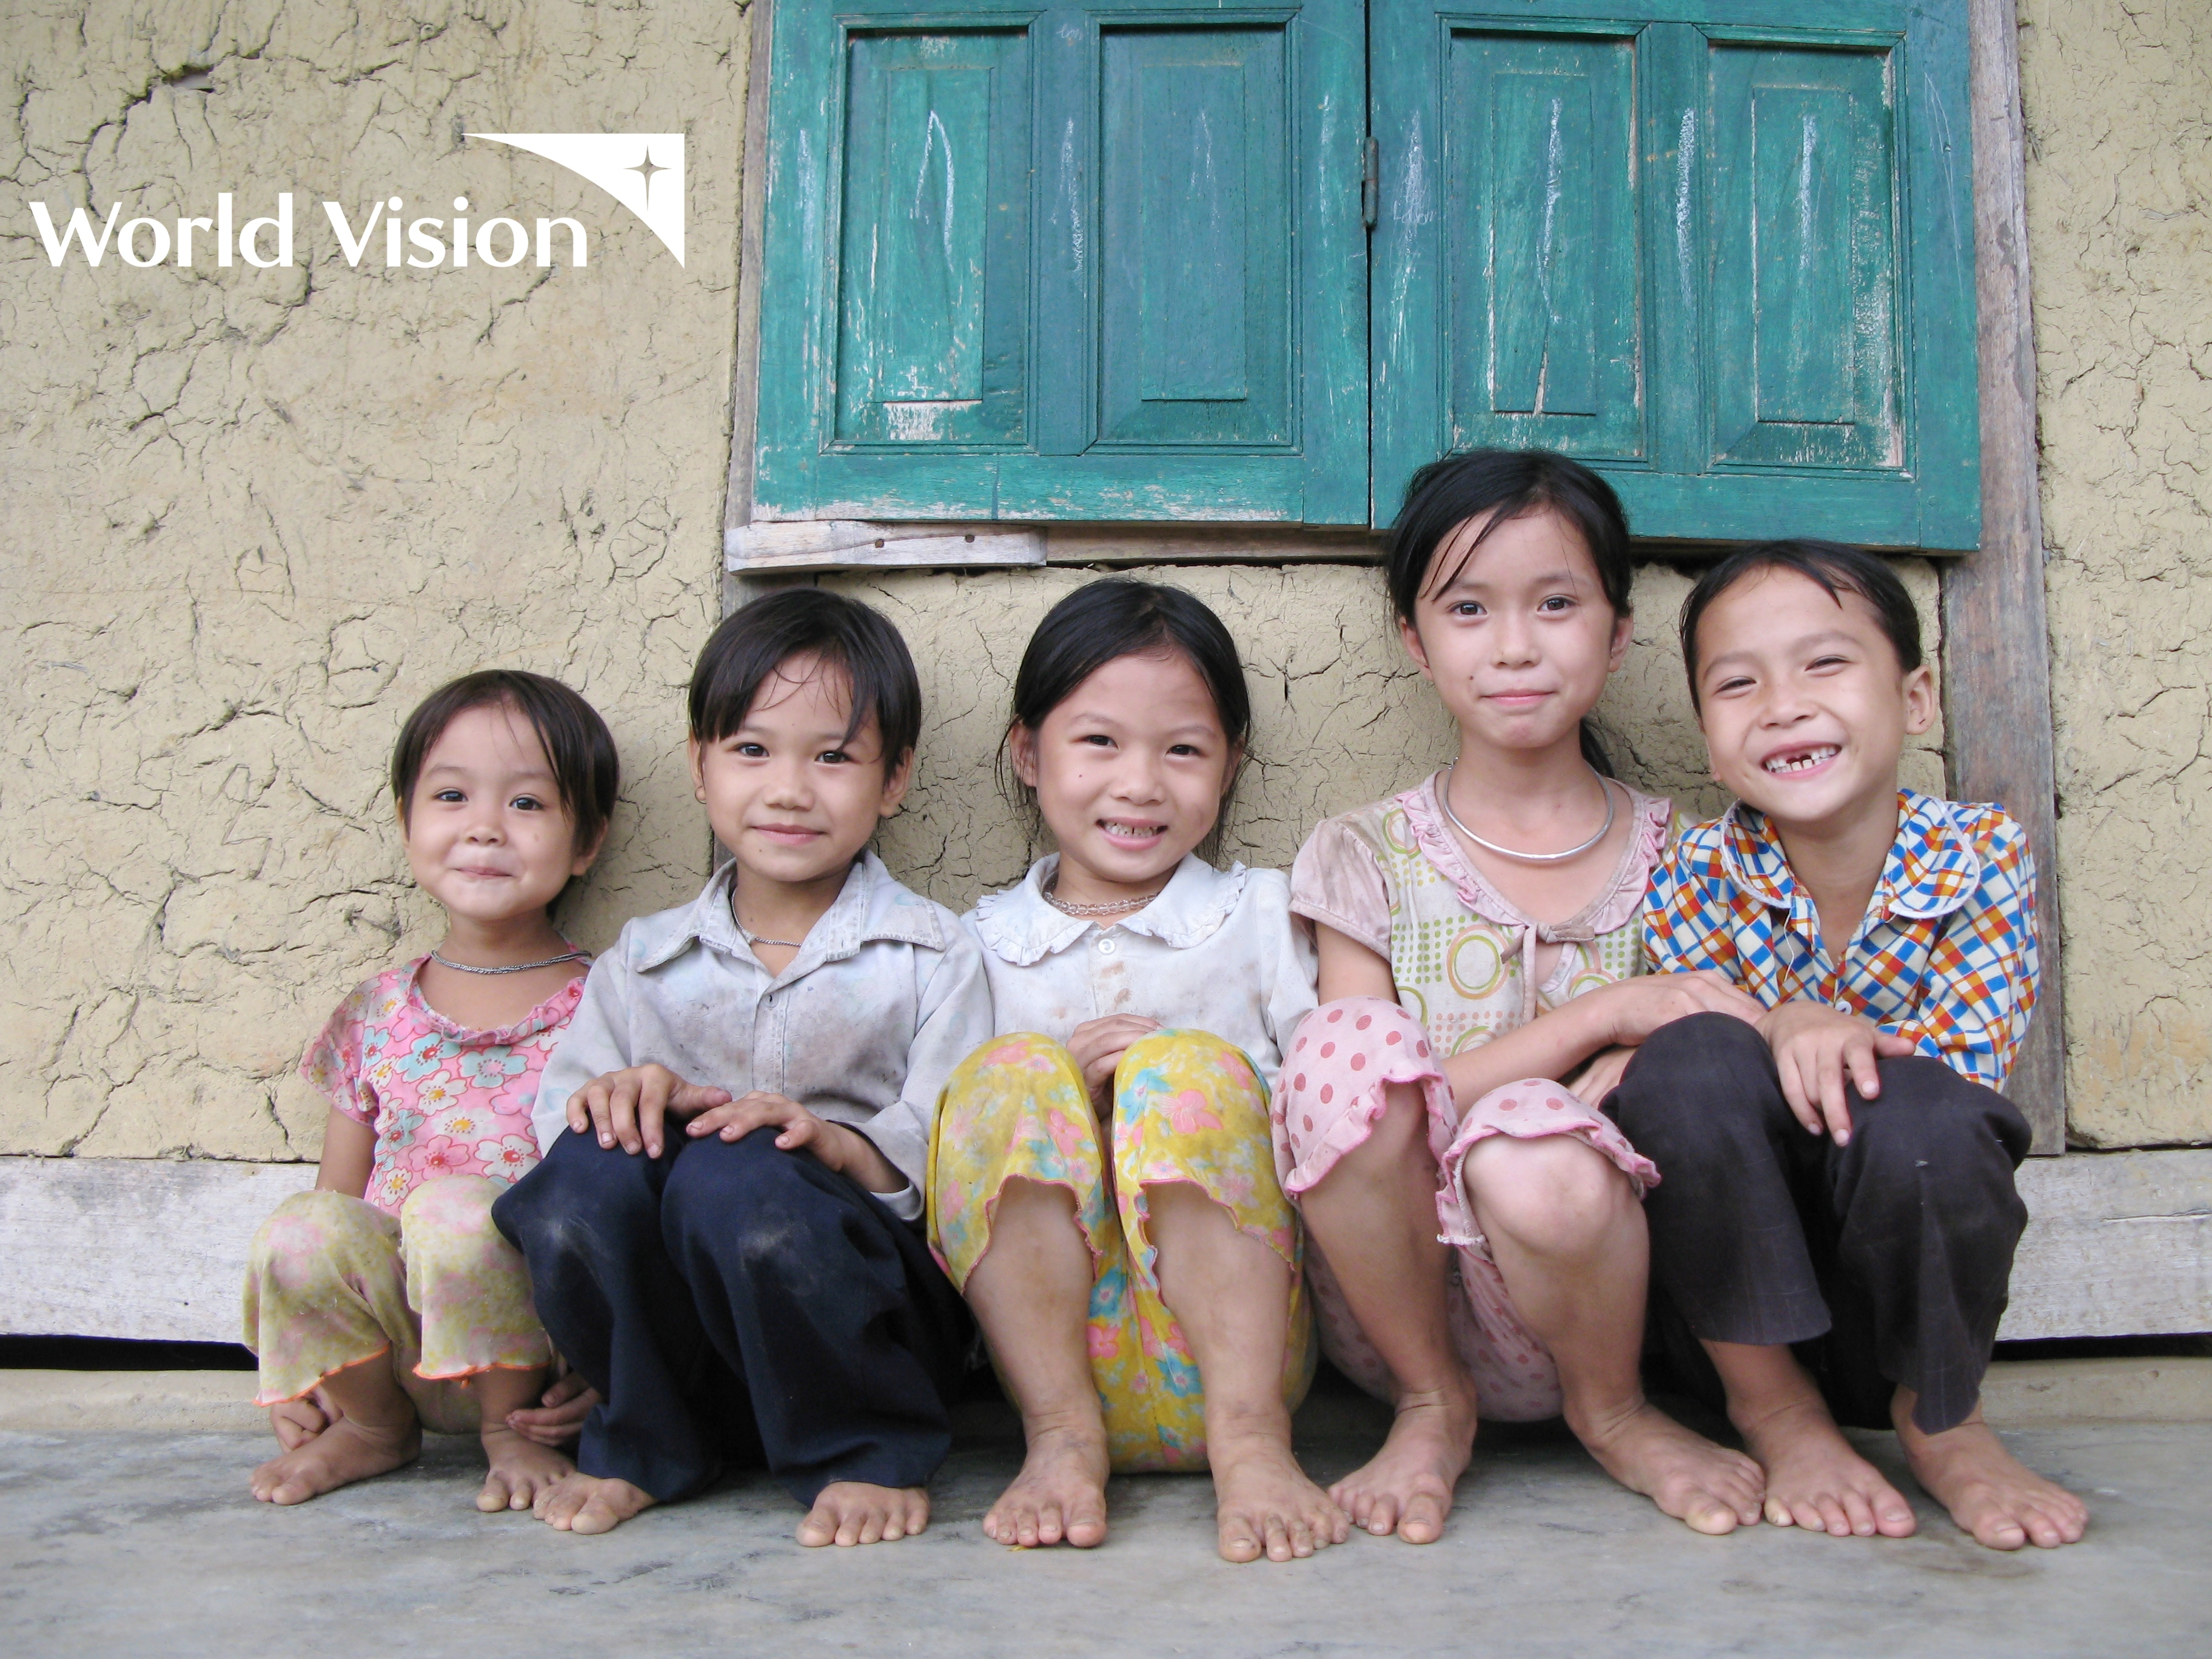 Sponsor a child through World Vision